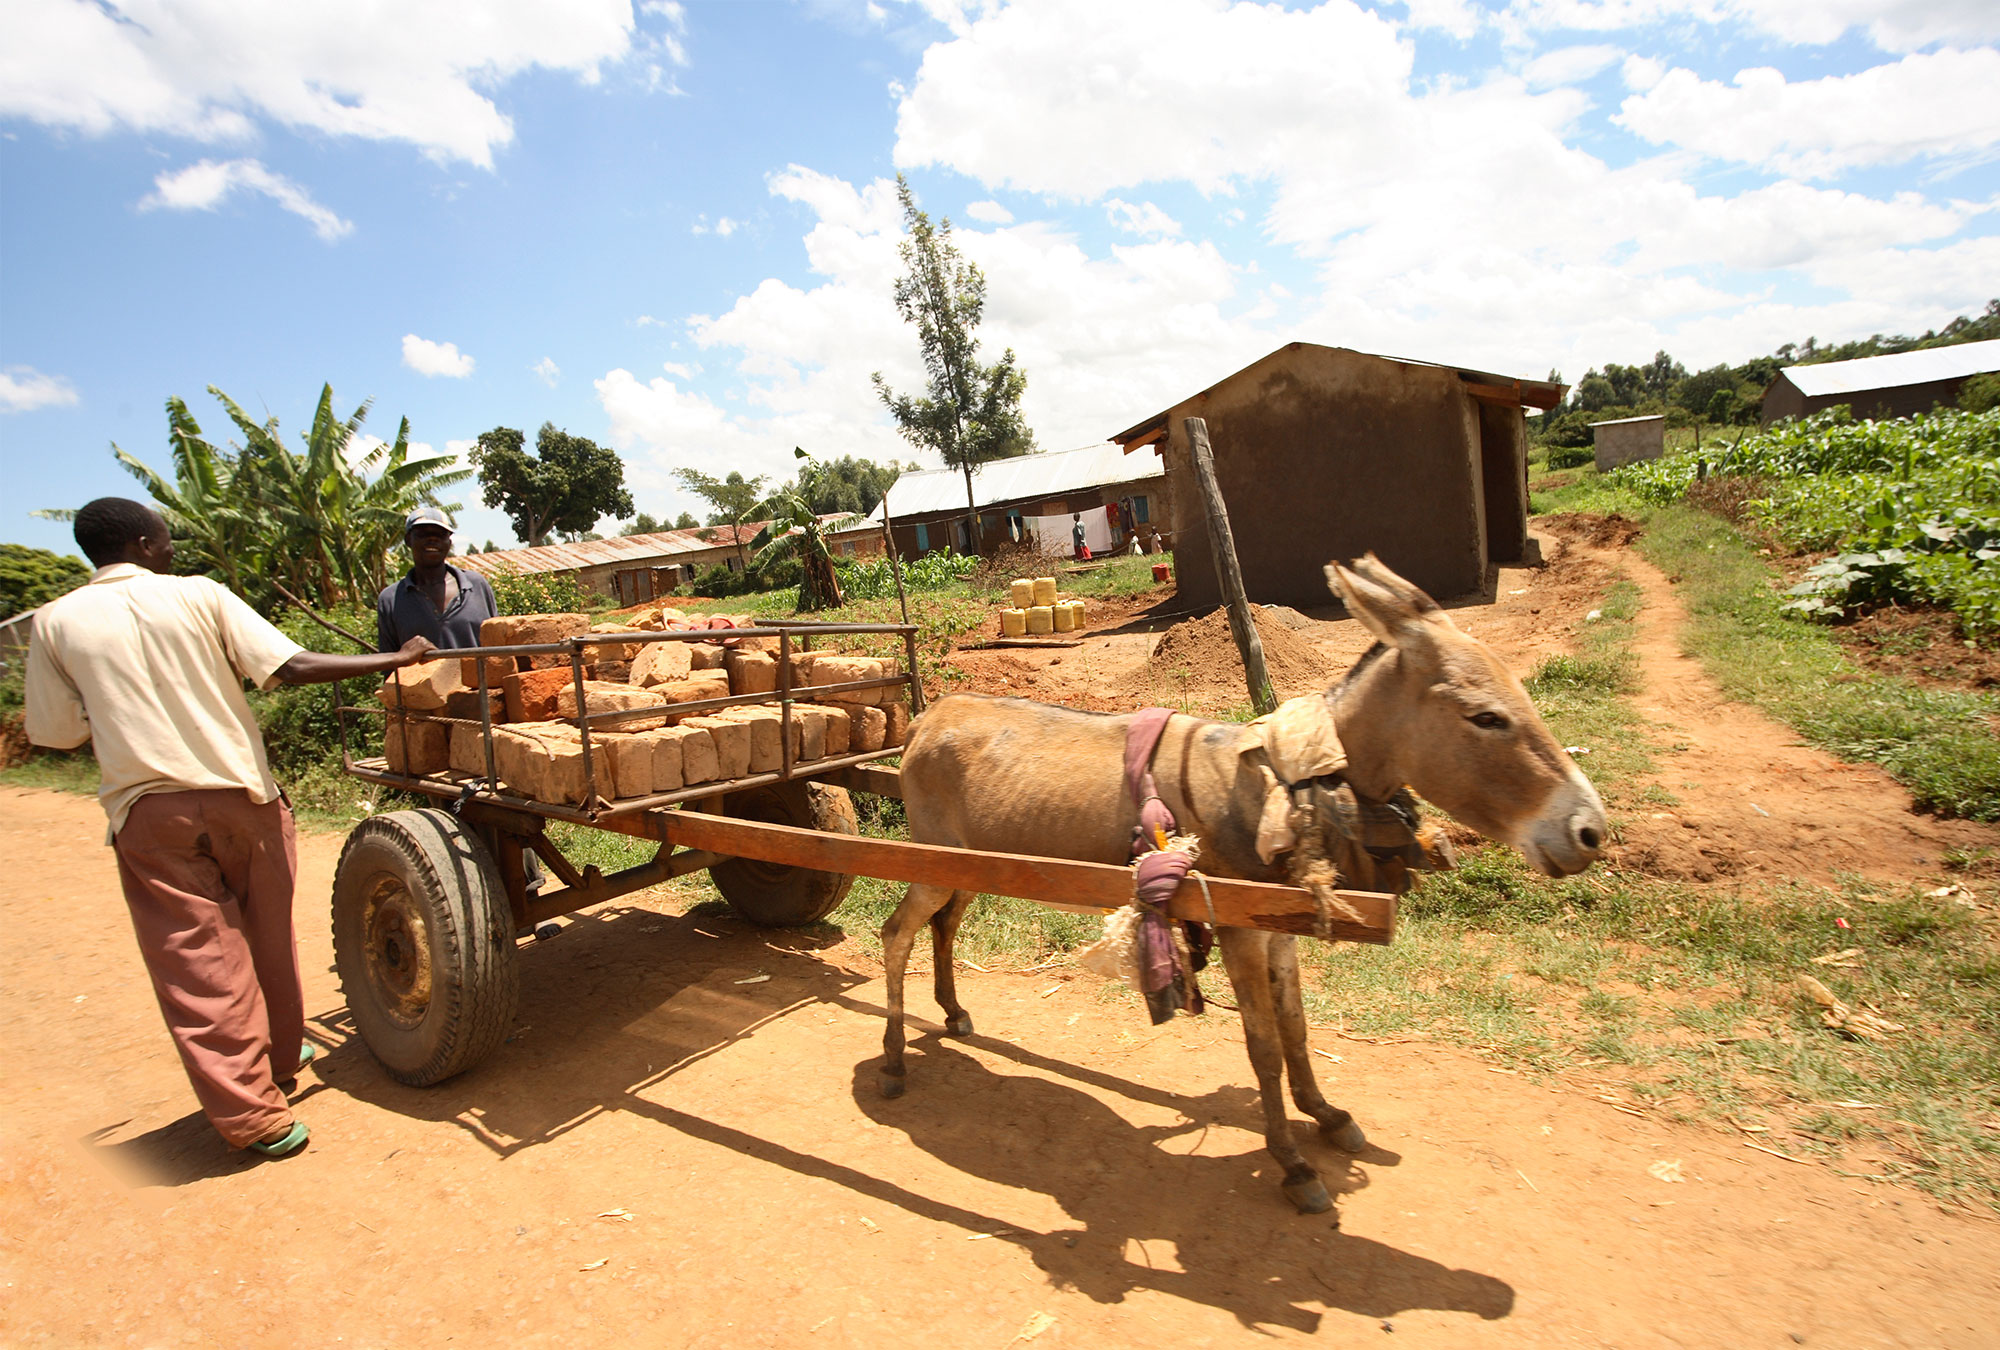 Two men with cart pulled by donkey